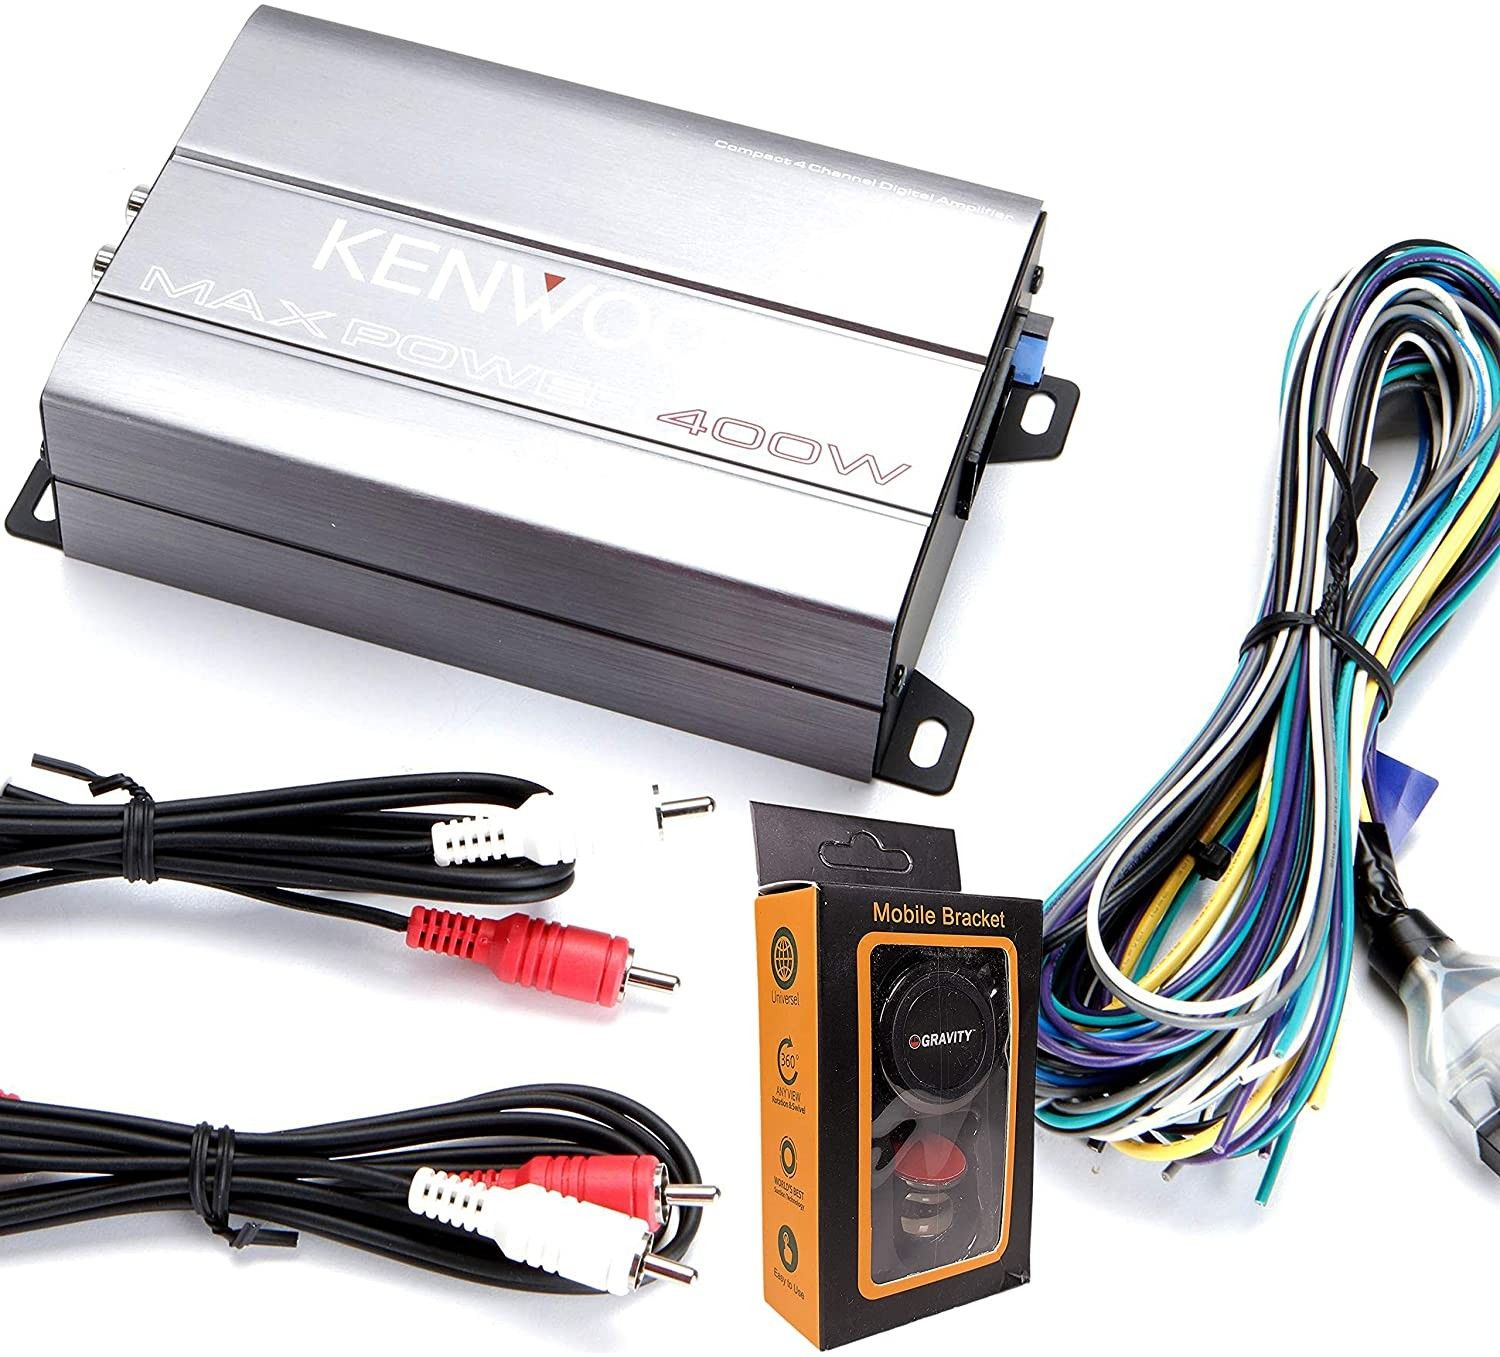 Pyle Hydra Amplifier Wiring In 2020 Marine Receiver Laptop Computers Poly Bags